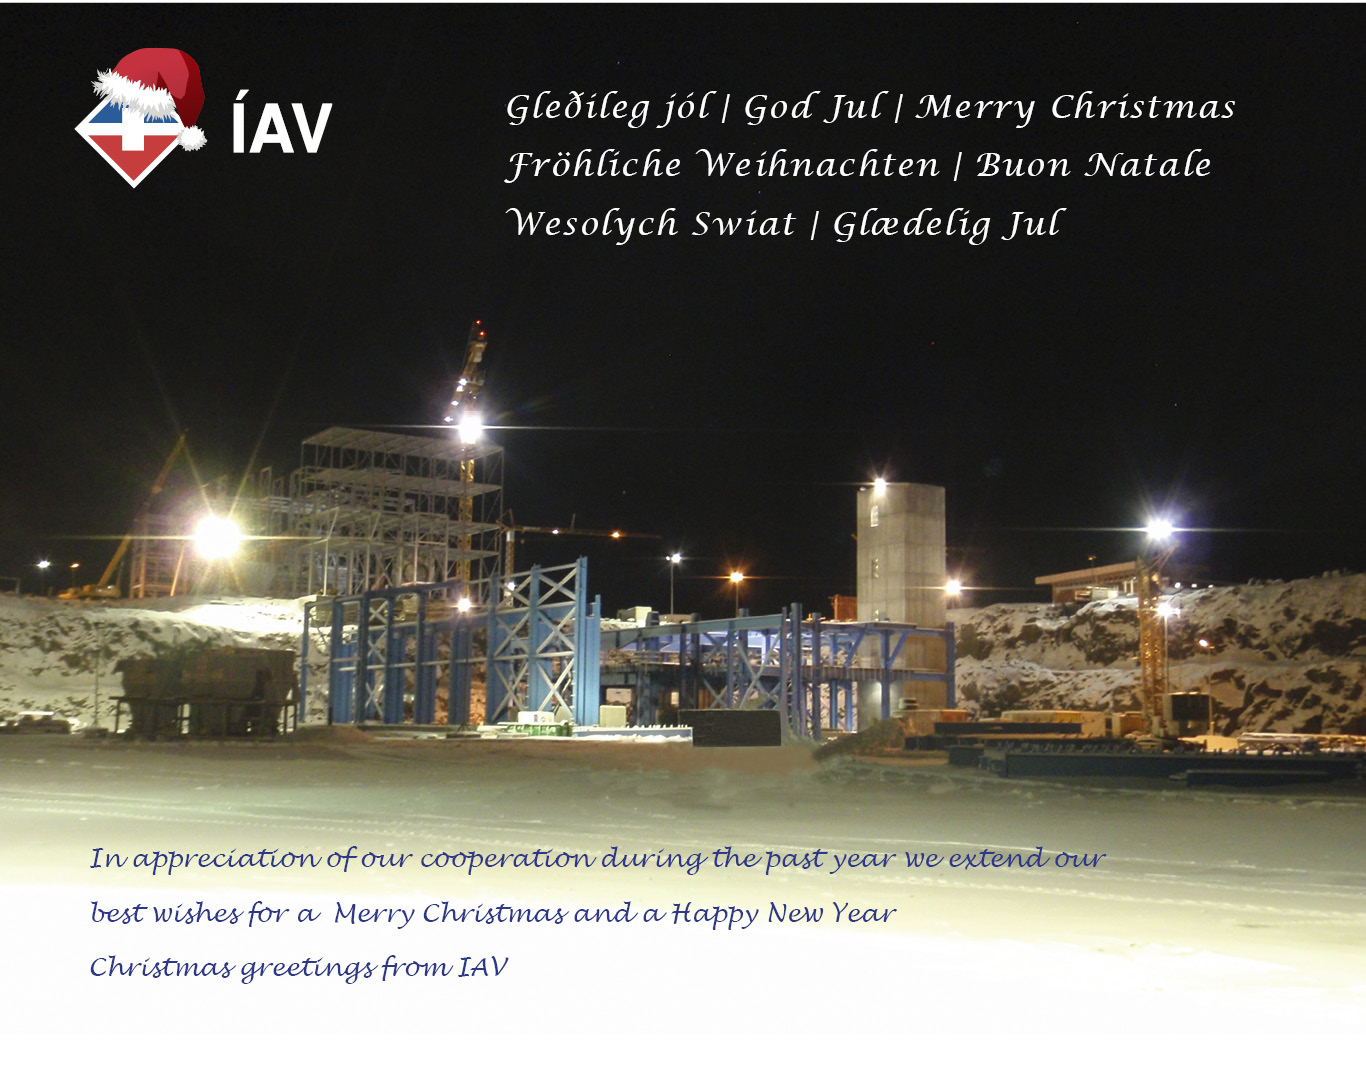 Christmas greetings from IAV